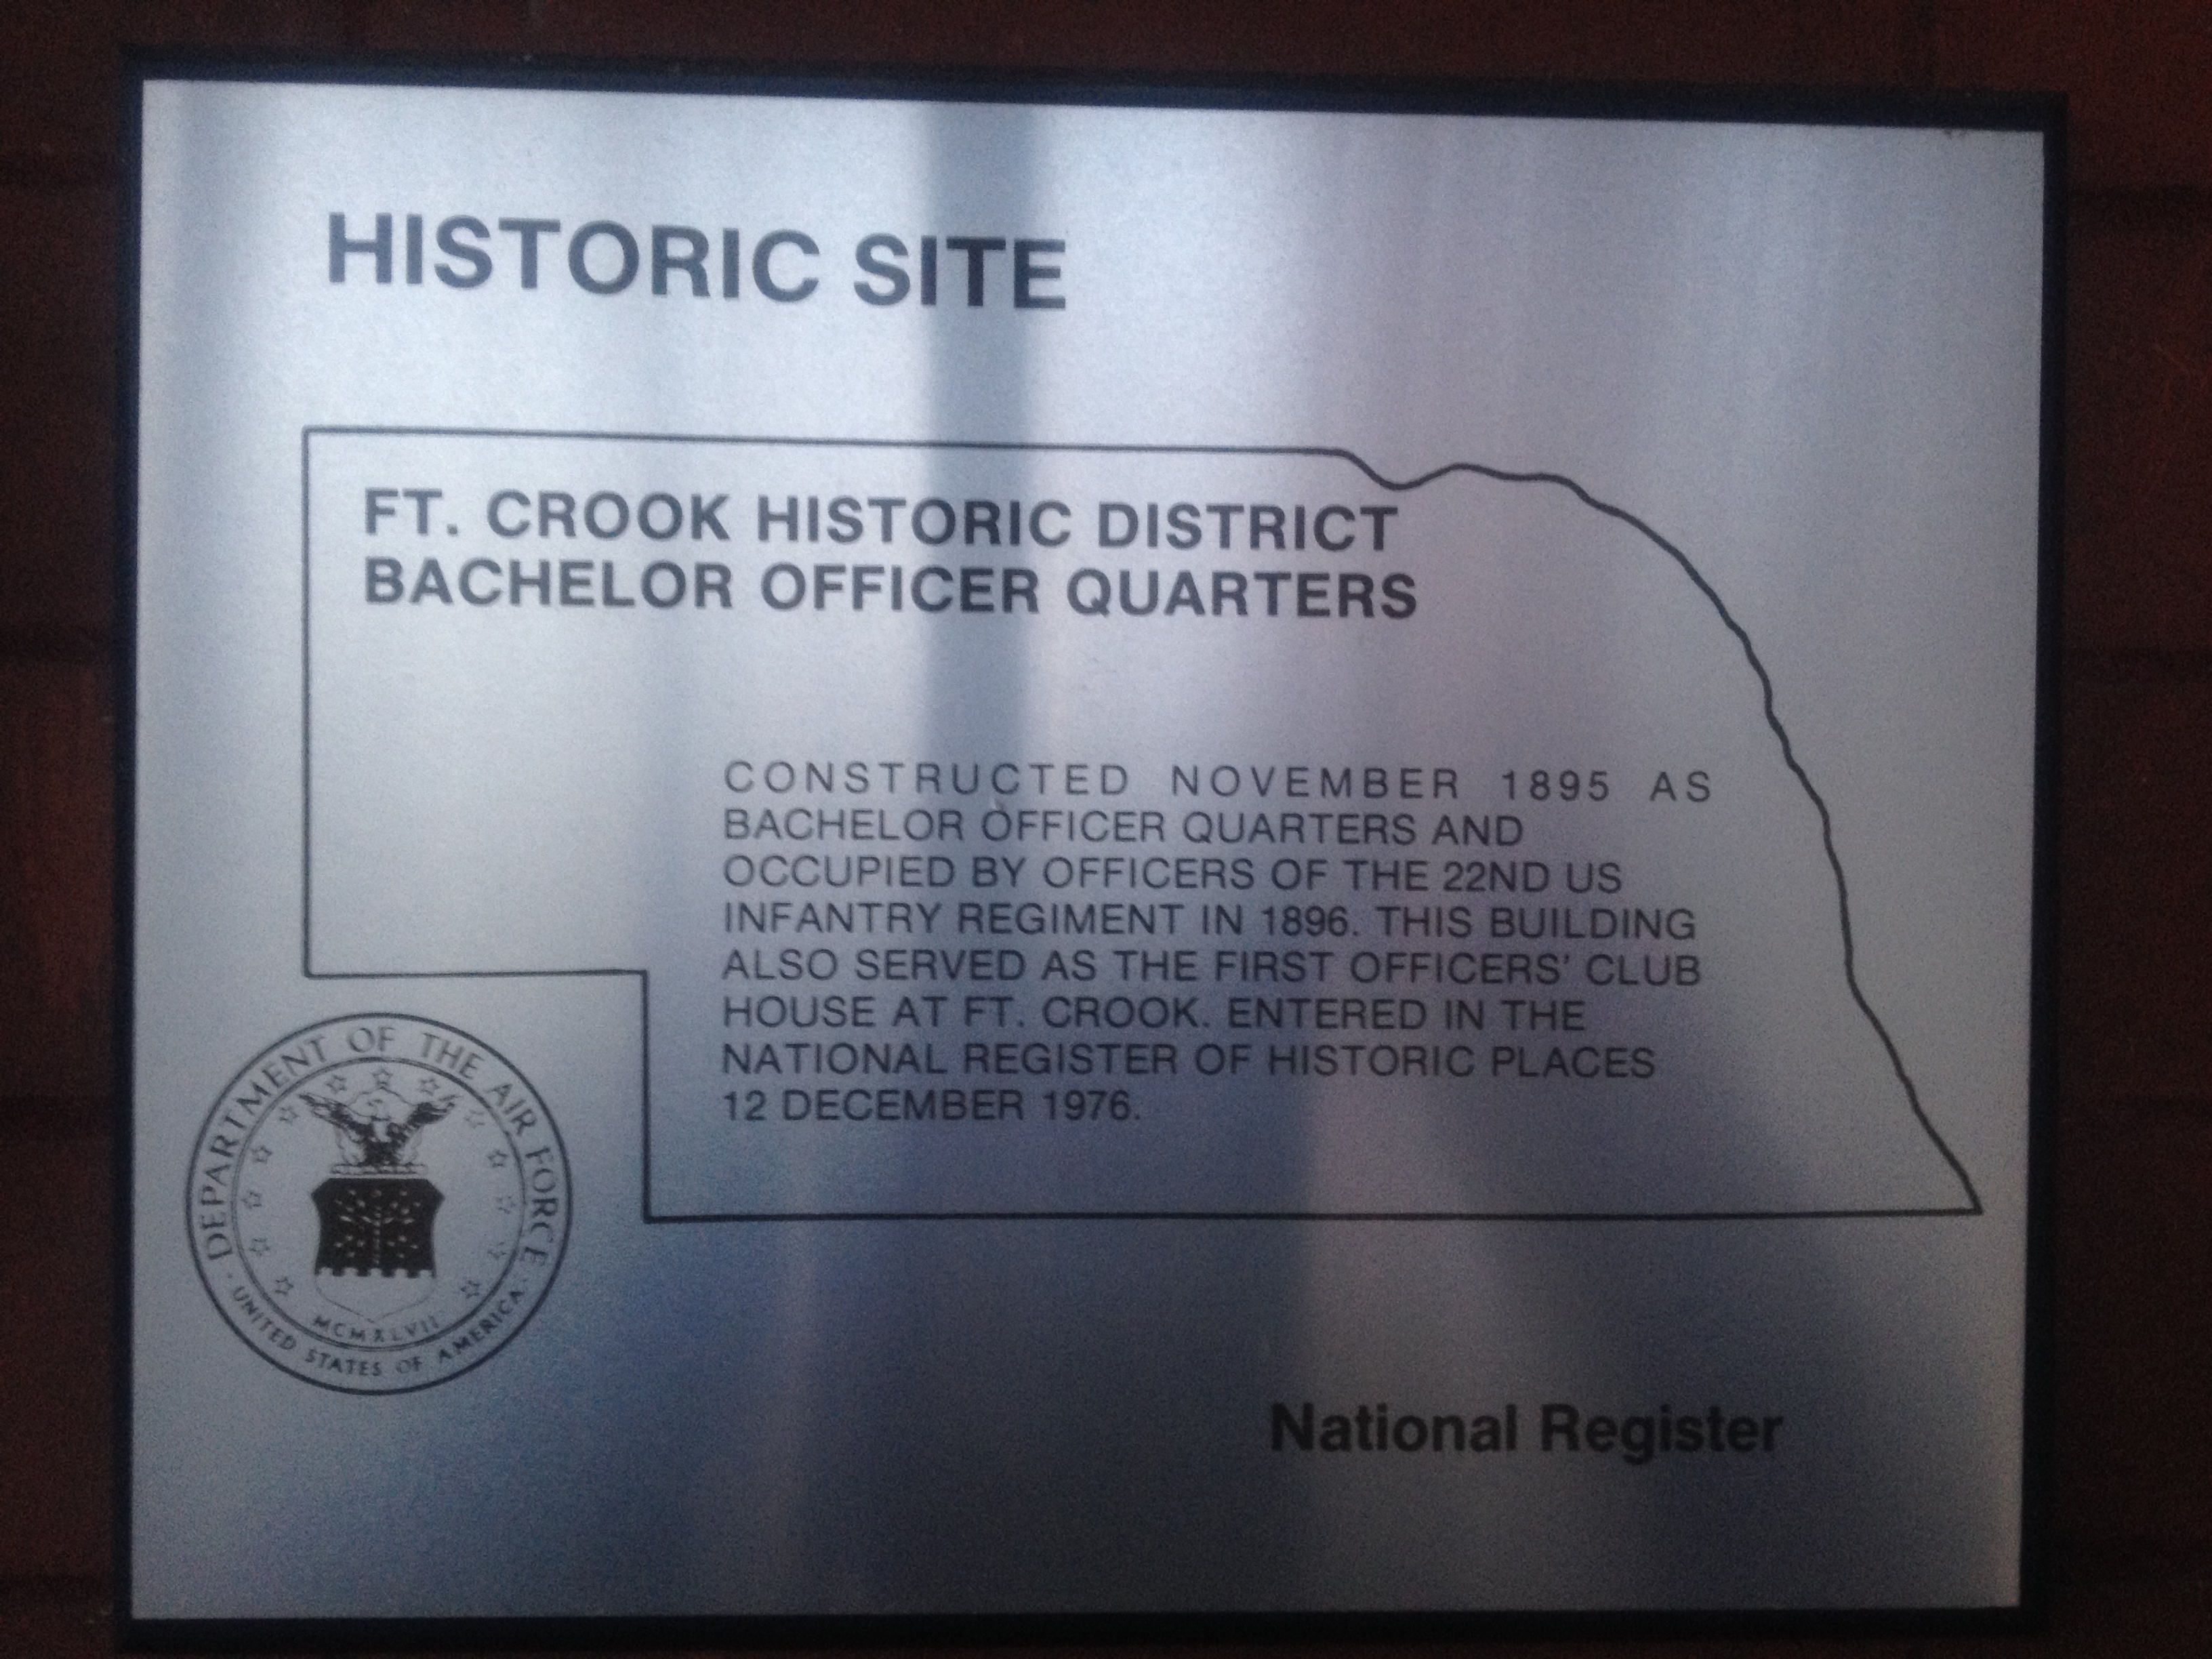 A historic placard with the history of the bachelor officer quarters.